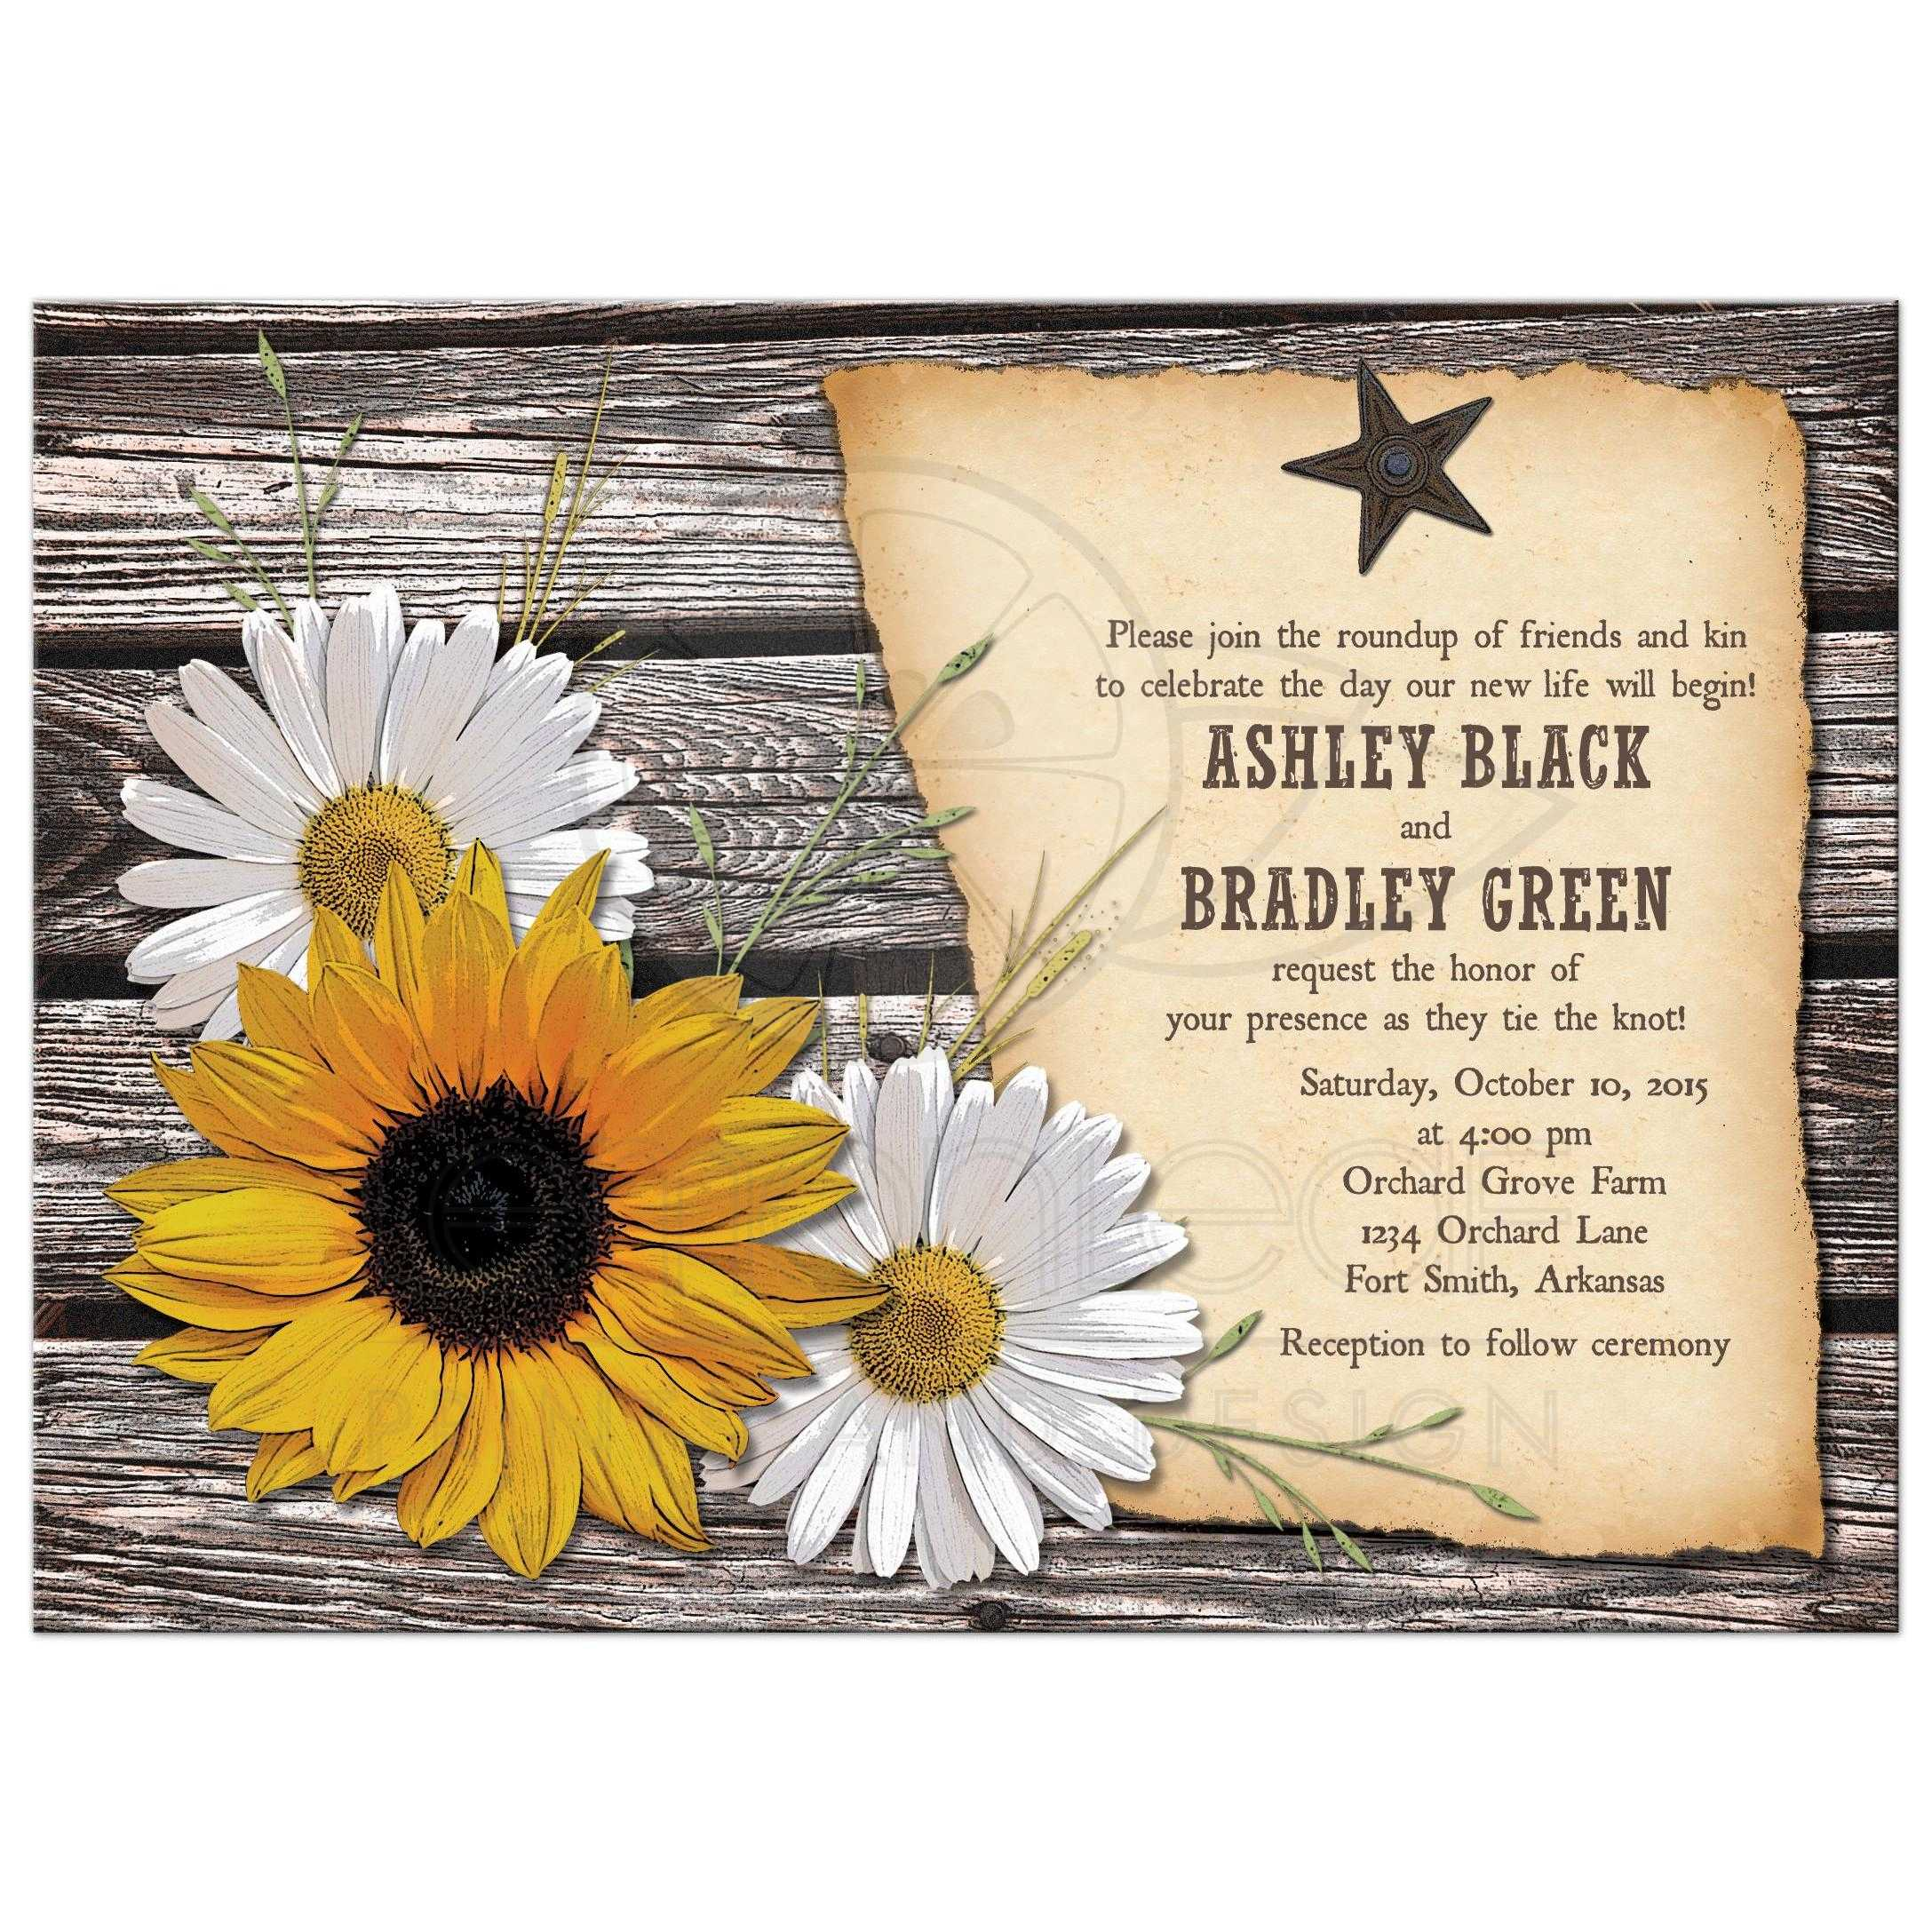 Rustic Daisy Wedding Invitations: Country Wedding Invitation Rustic Sunflower Daisy Wood